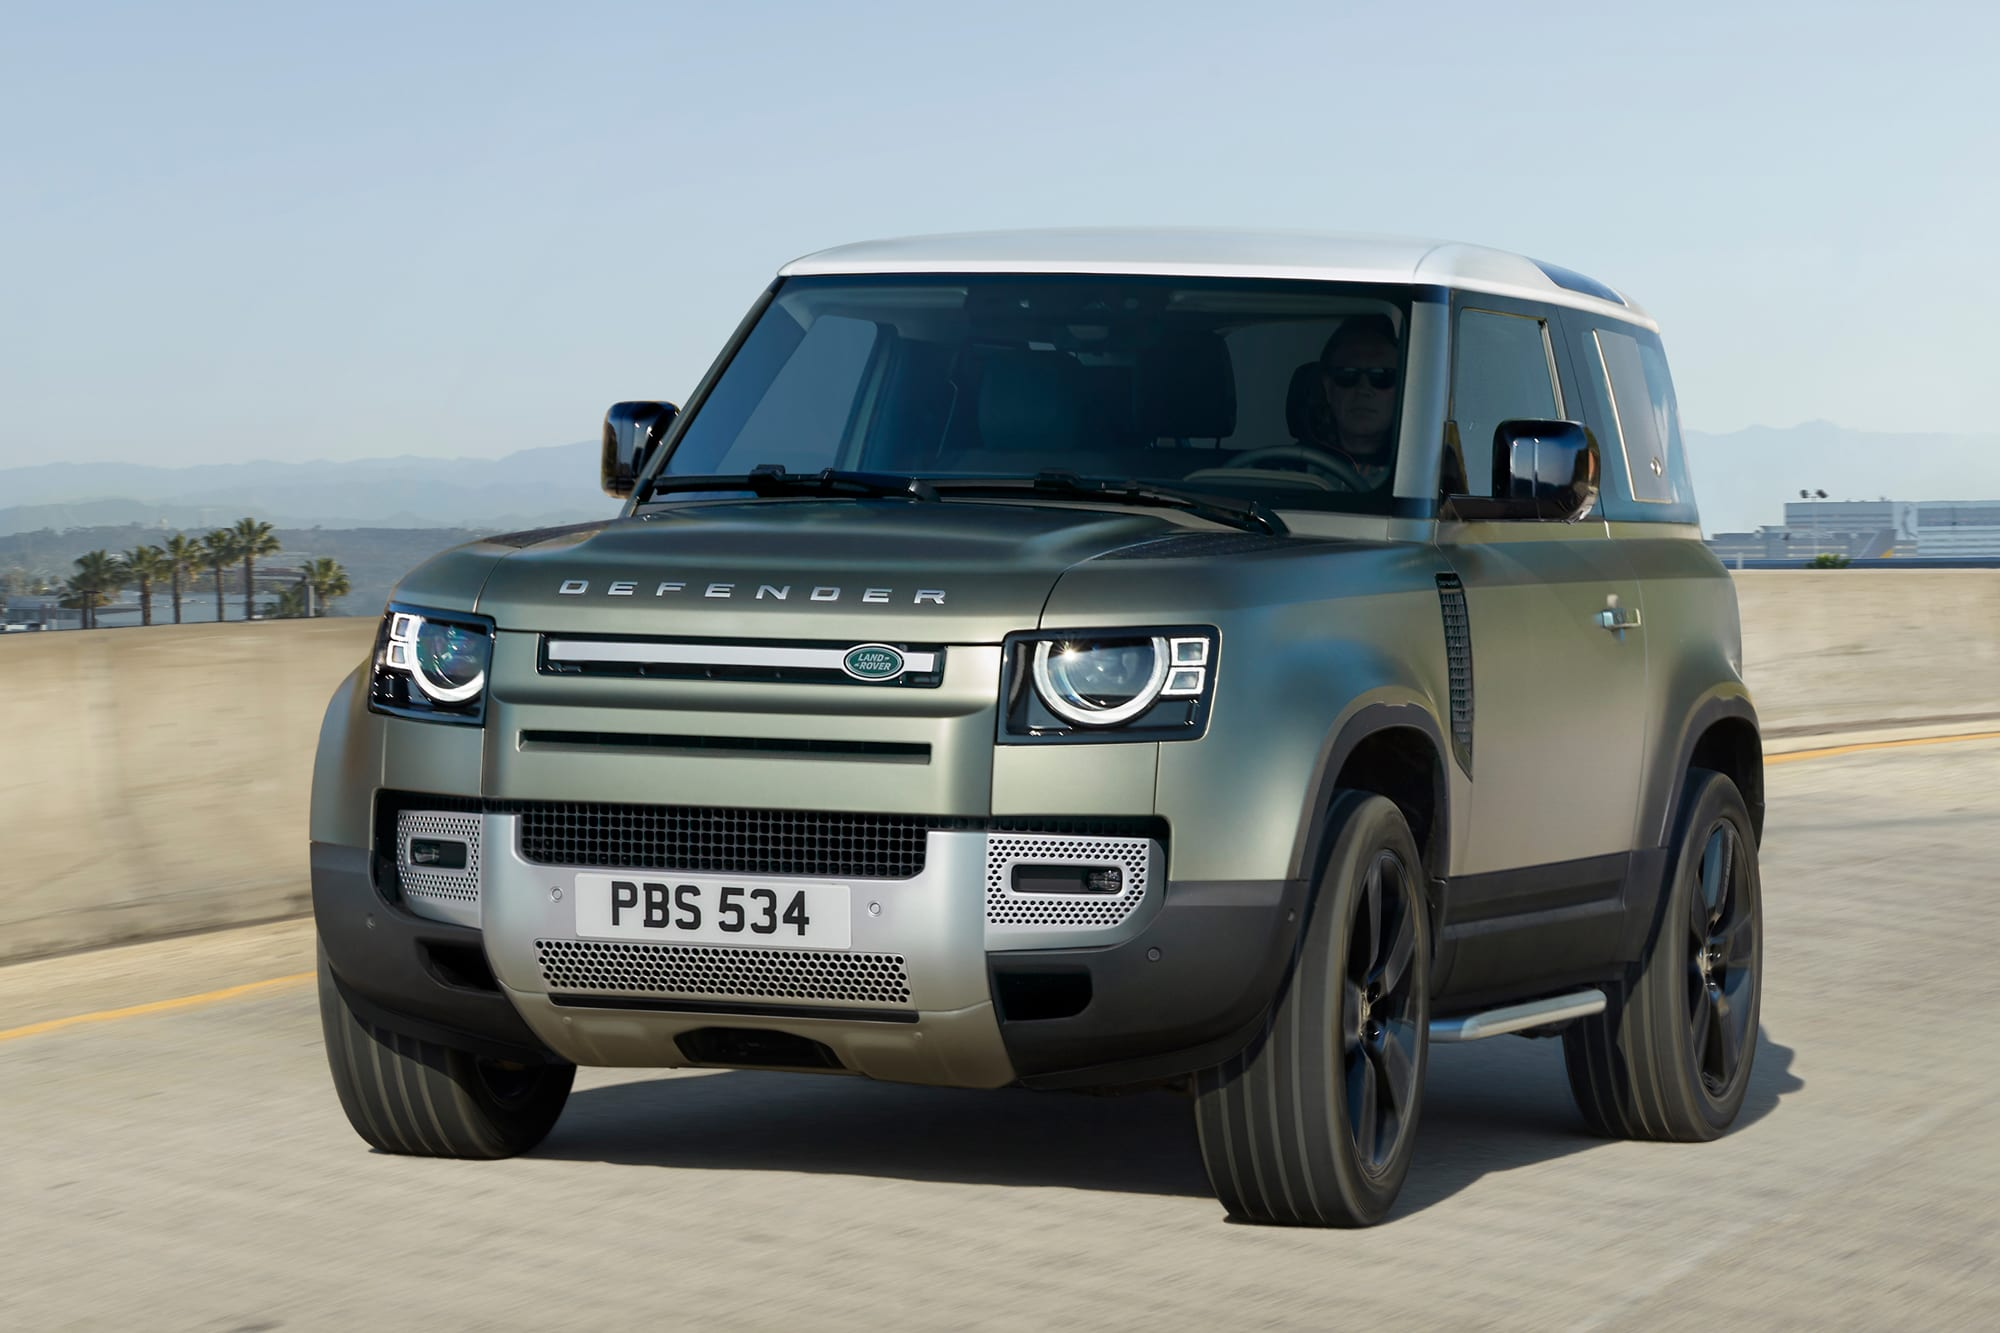 Land Rover unveils the all new Defender at Frankfurt Motor Show after 22-year hiatus in US